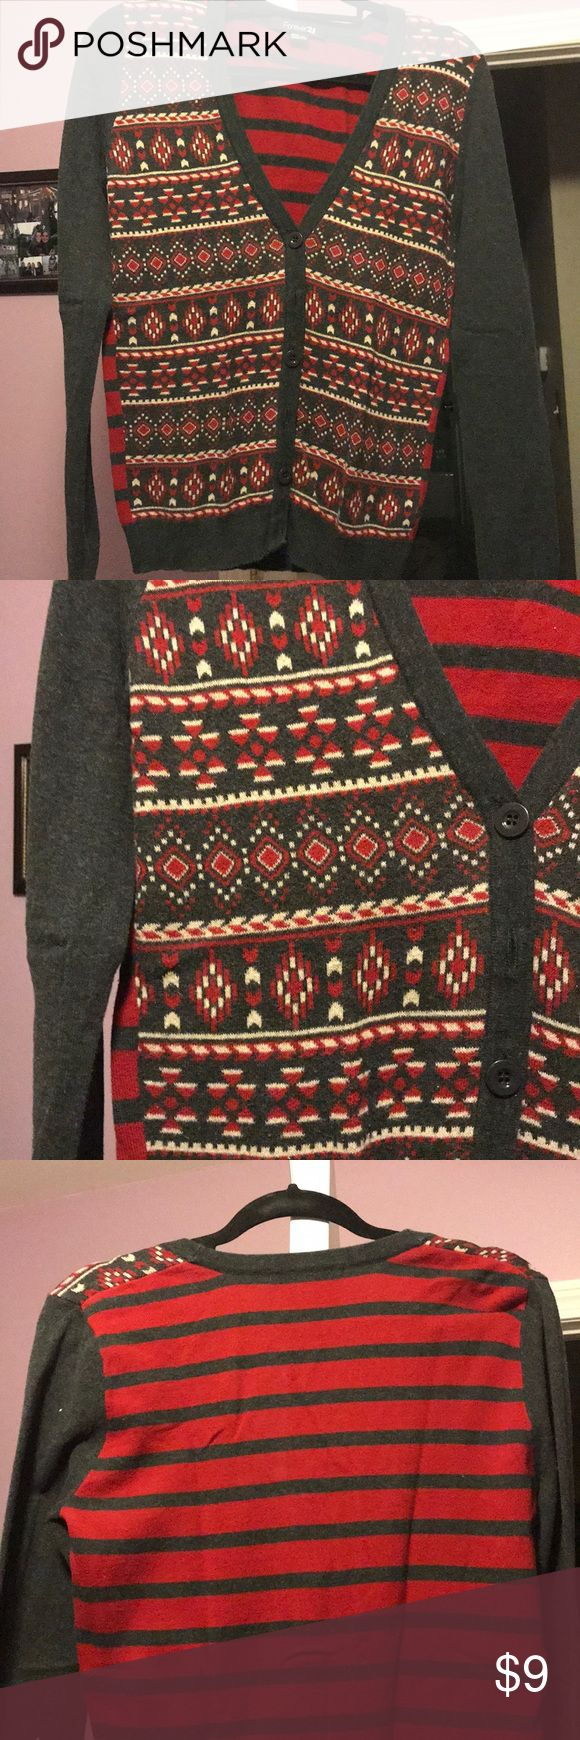 Aztec print cardigan Excellent condition Aztec print cardigan pattern on front, stripes on back Forever 21 Sweaters Cardigans